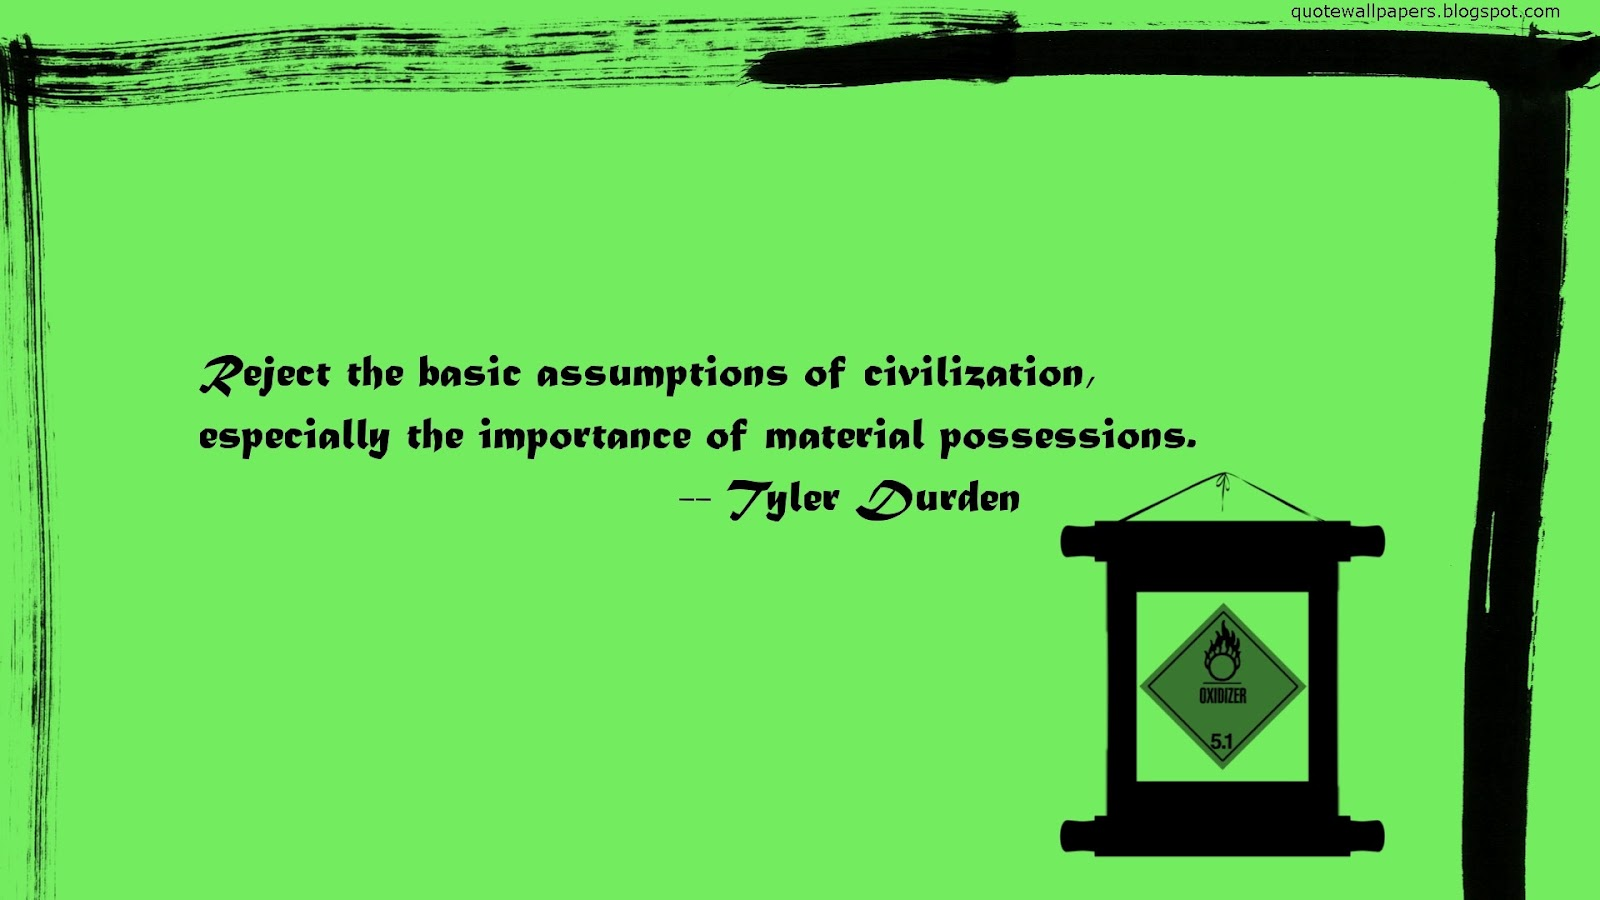 Reject the basic assumptions of civilization especially the importance of material possessions. Tyler Durden